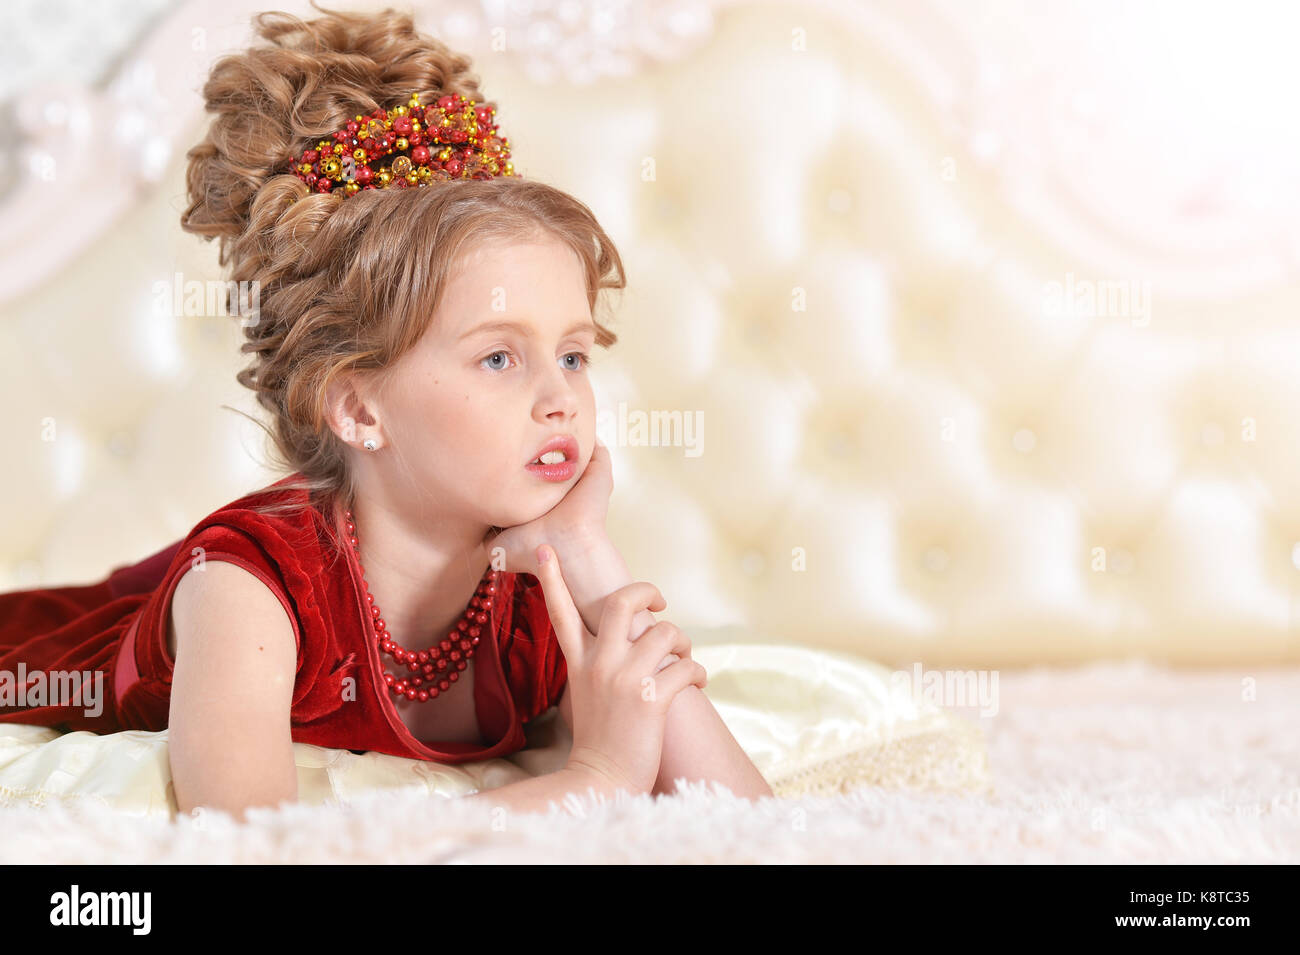 3674f78874d9 Cute little girl in red velvet dress with retro hairstyle lying on beige  couch